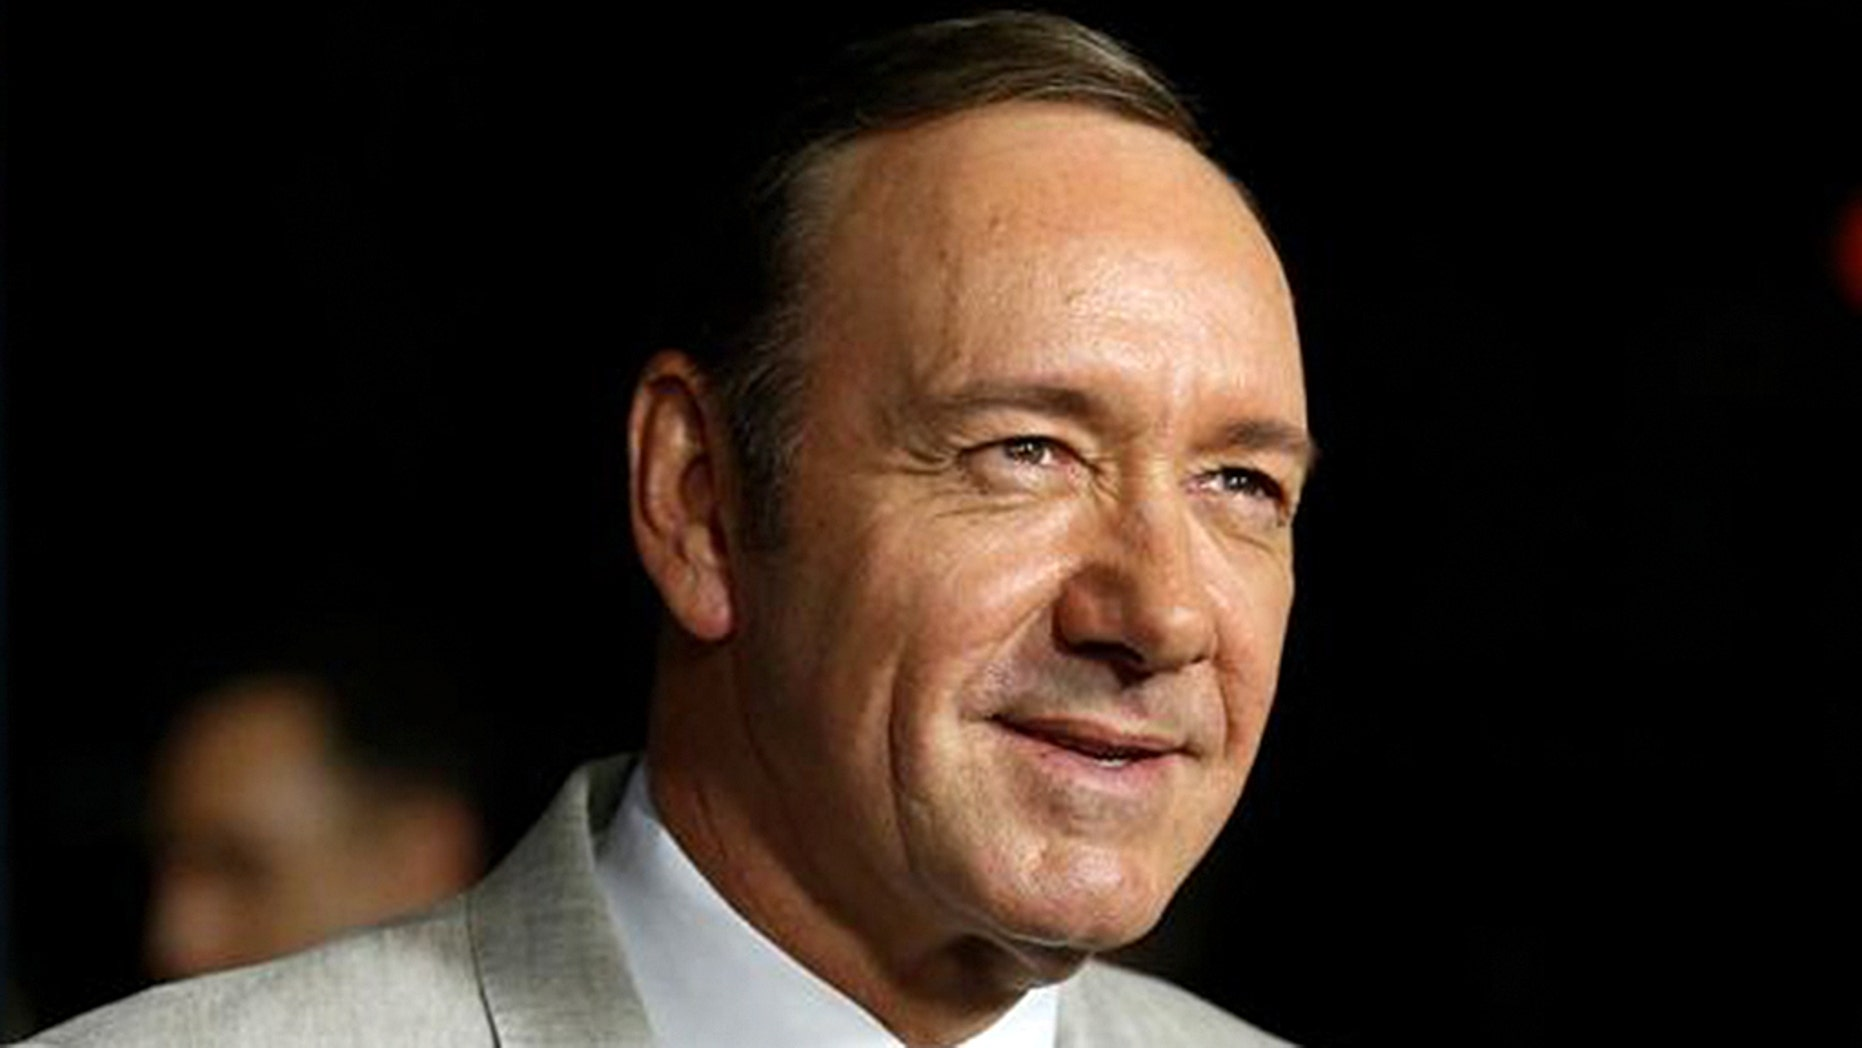 Kevin Spacey's new film opened to a career-low for the actor.